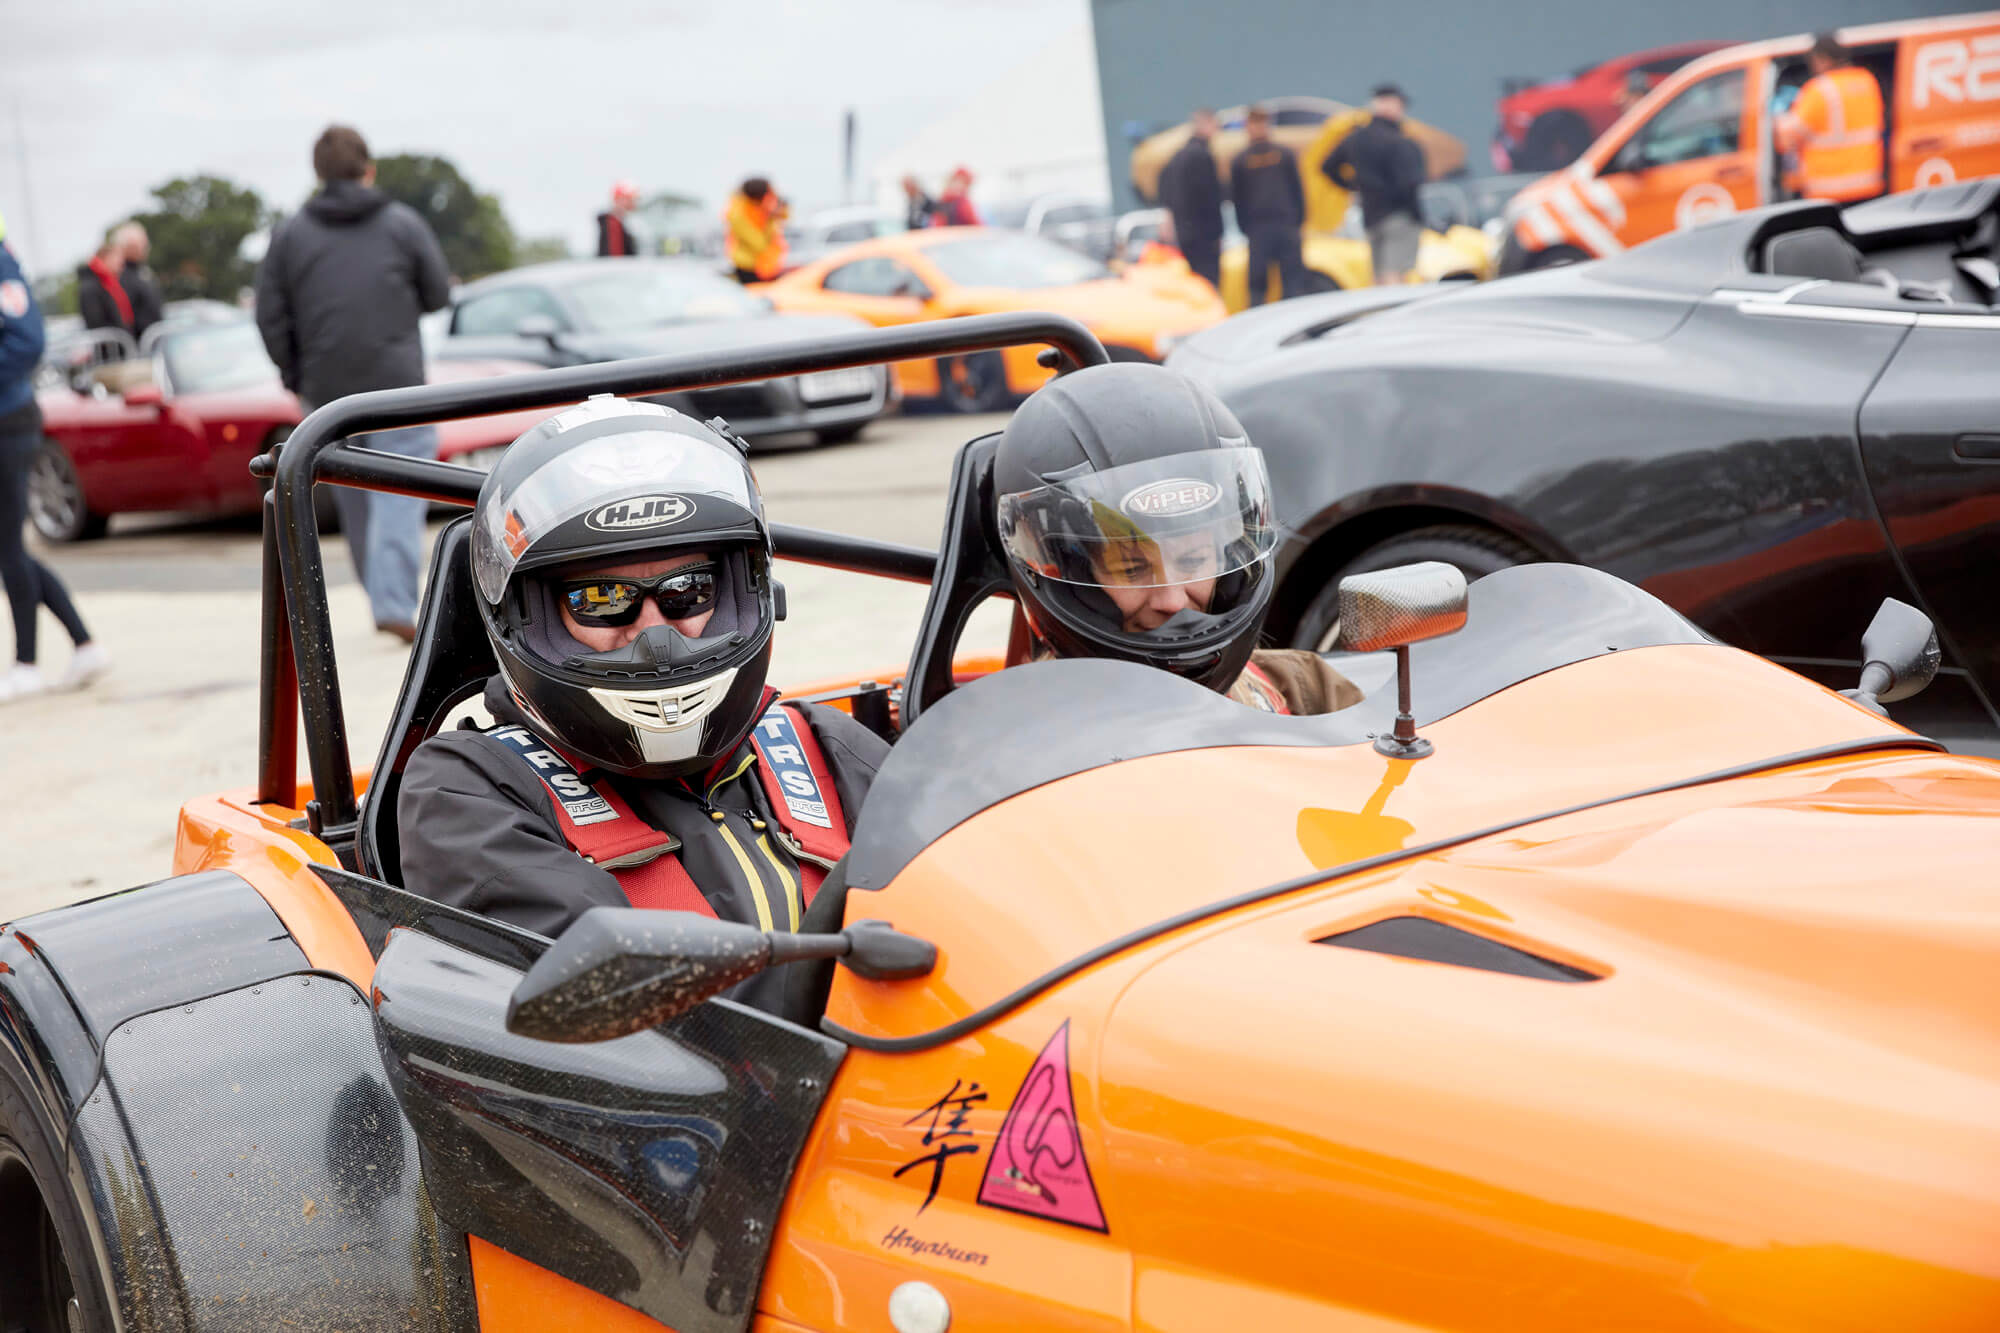 Two people with helments on driving off in an open-topped two-seater orange car as part of the Dream Rides activity at The Classic at Silverstone